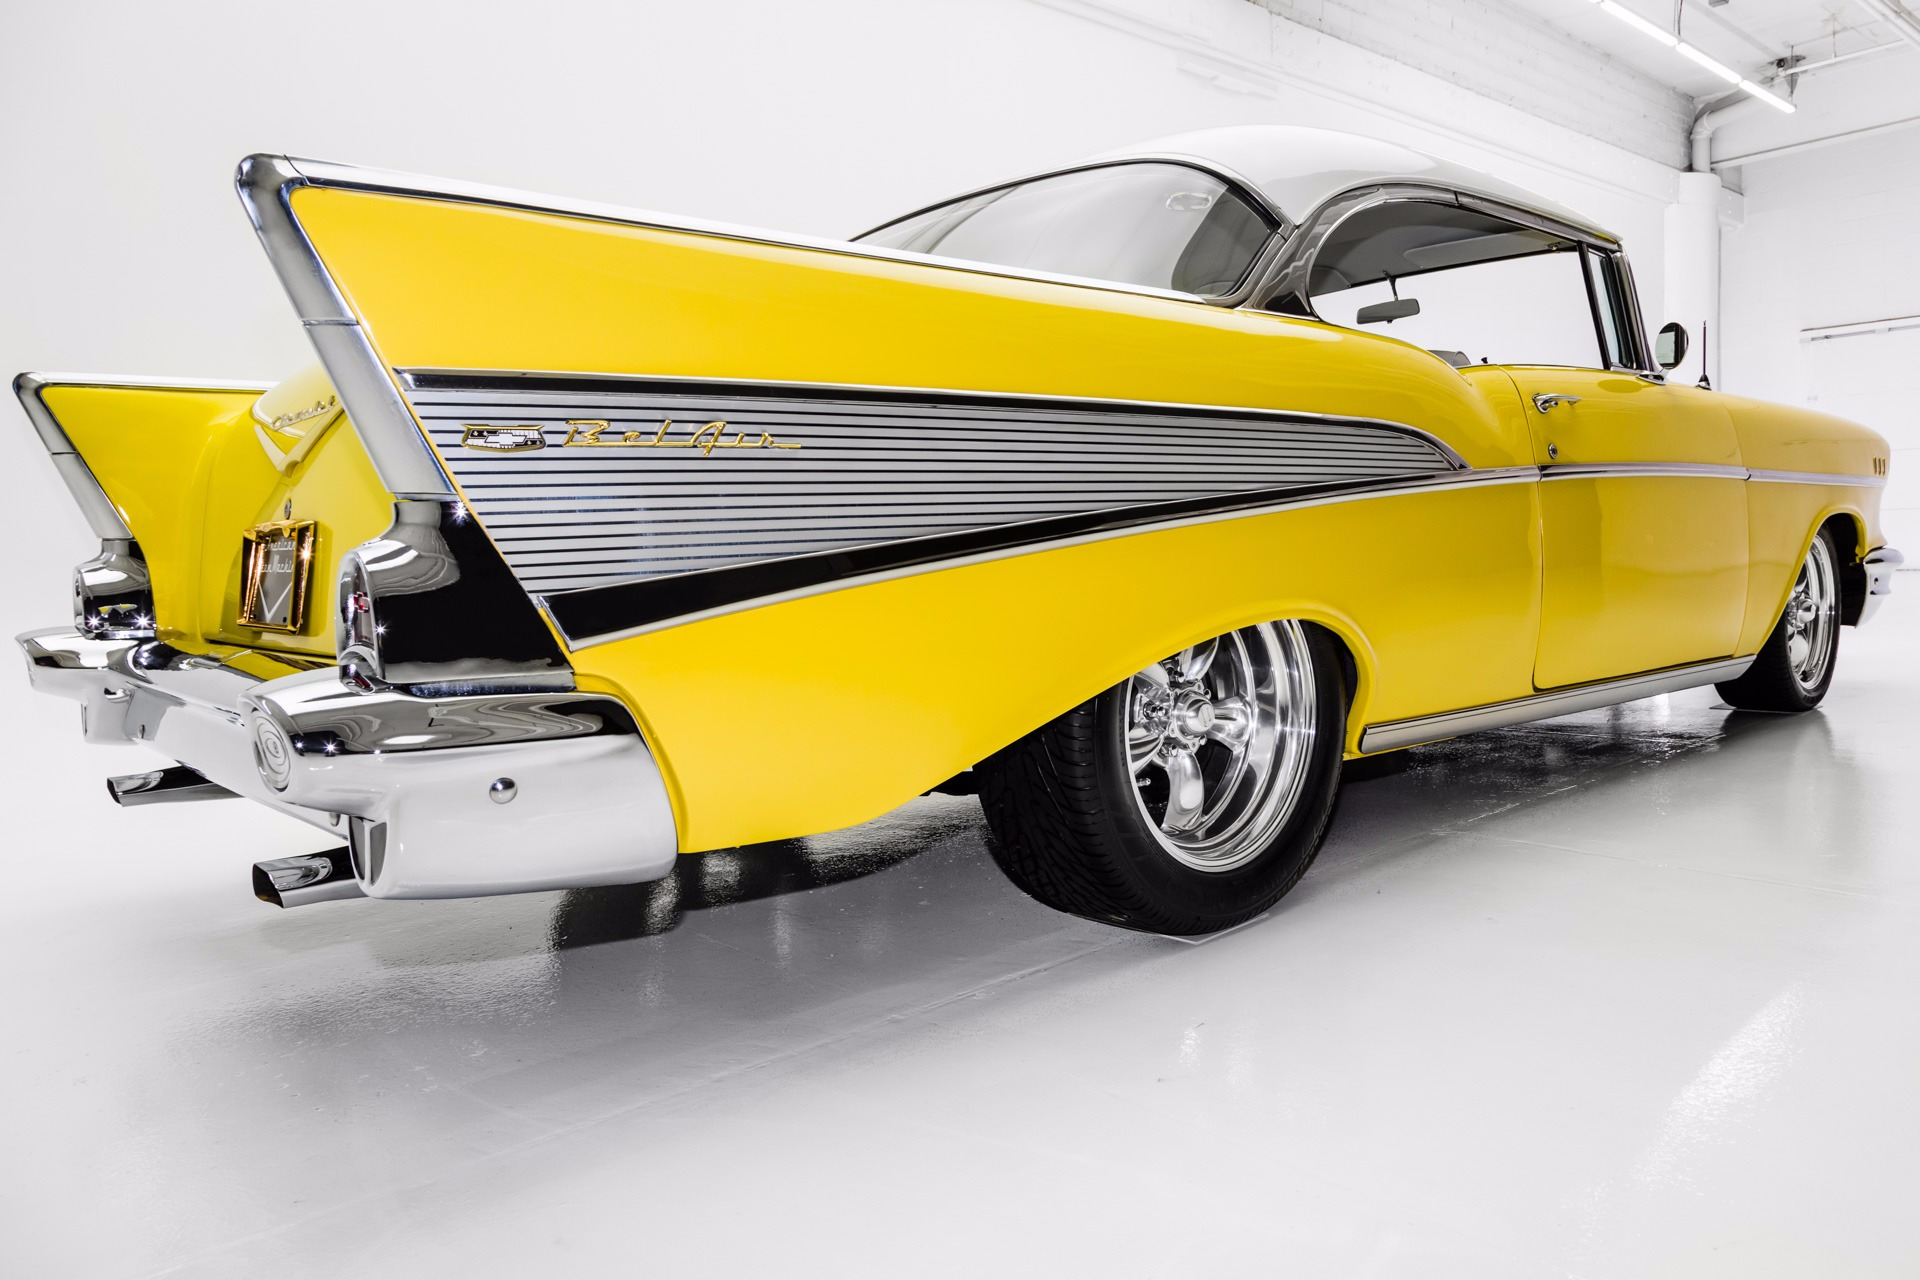 For Sale Used 1957 Chevrolet Bel Air ZZ4, 4-Speed, Disc Brakes | American Dream Machines Des Moines IA 50309